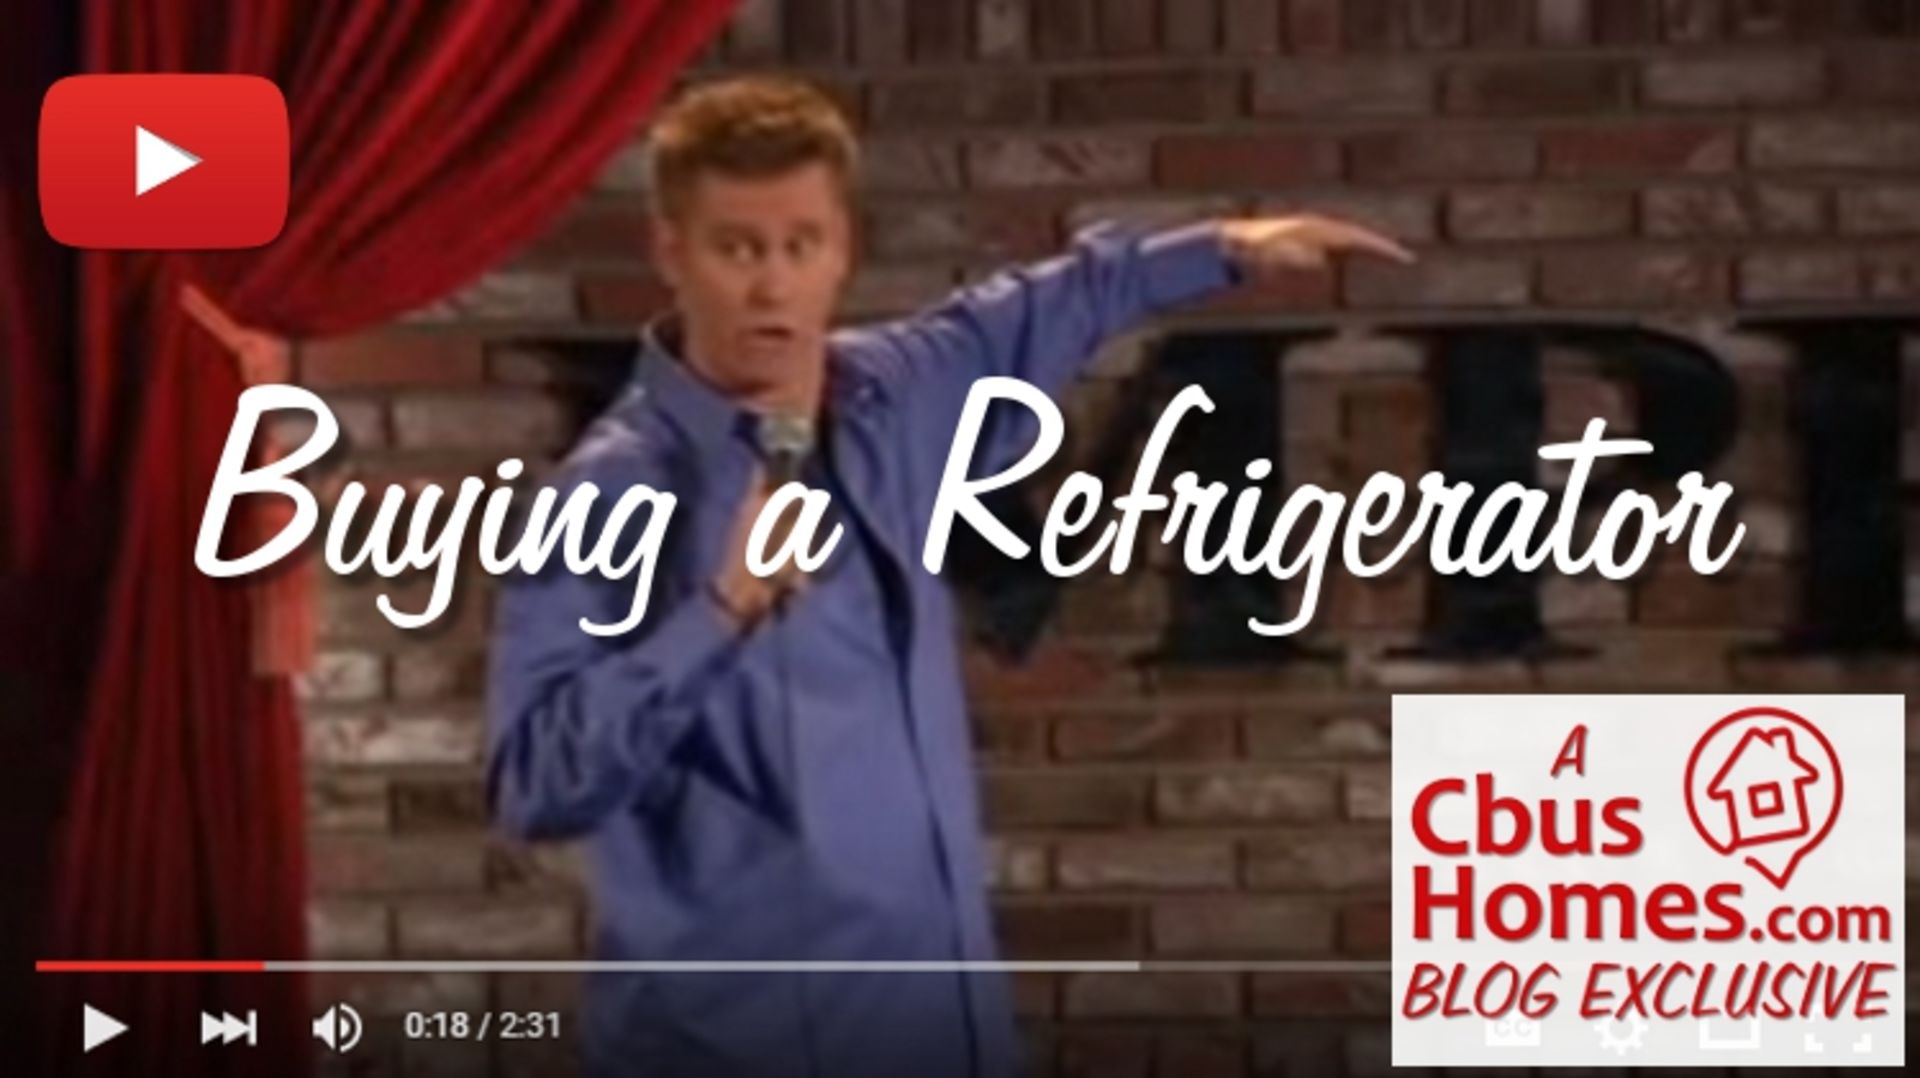 VIDEO: Hilarious Stand-Up by Comic Brian Regan About Buying a New Refrigerator